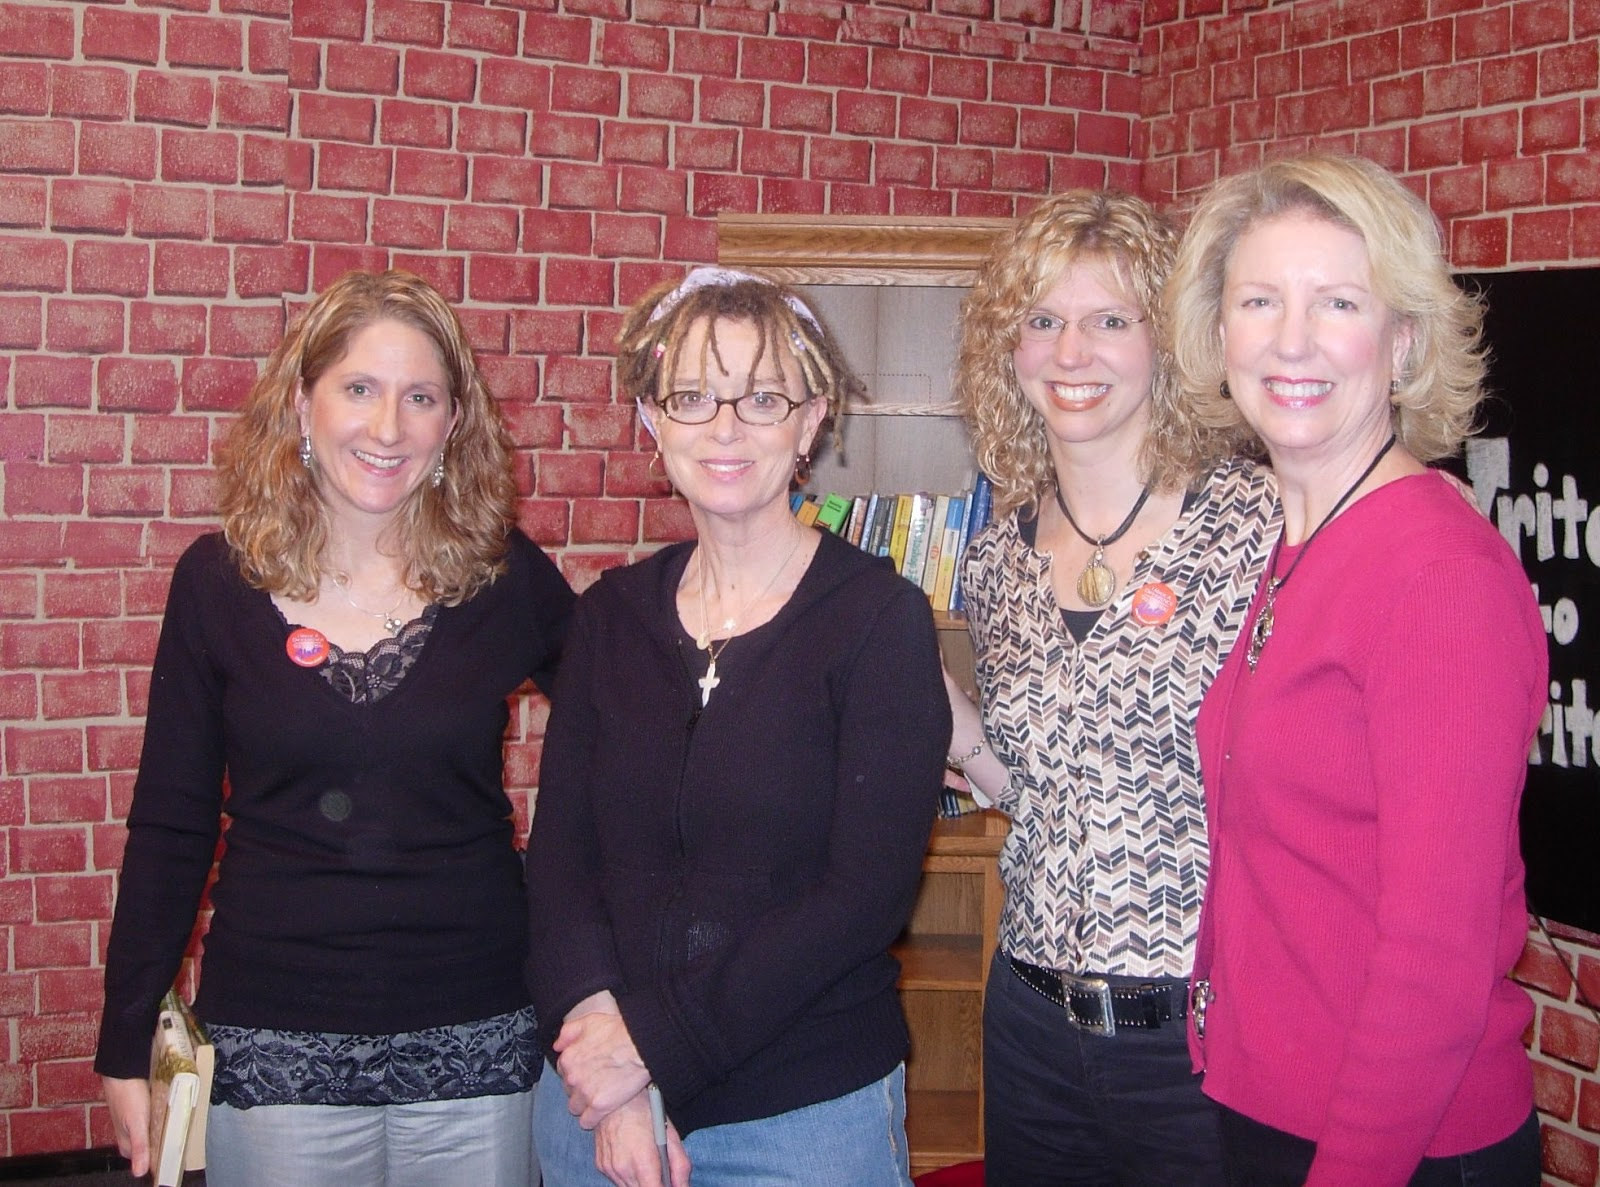 I Was Especially Excited To Meet Anne Lamott And Jodi Picoult  Two Book  Club Favorite Authors!